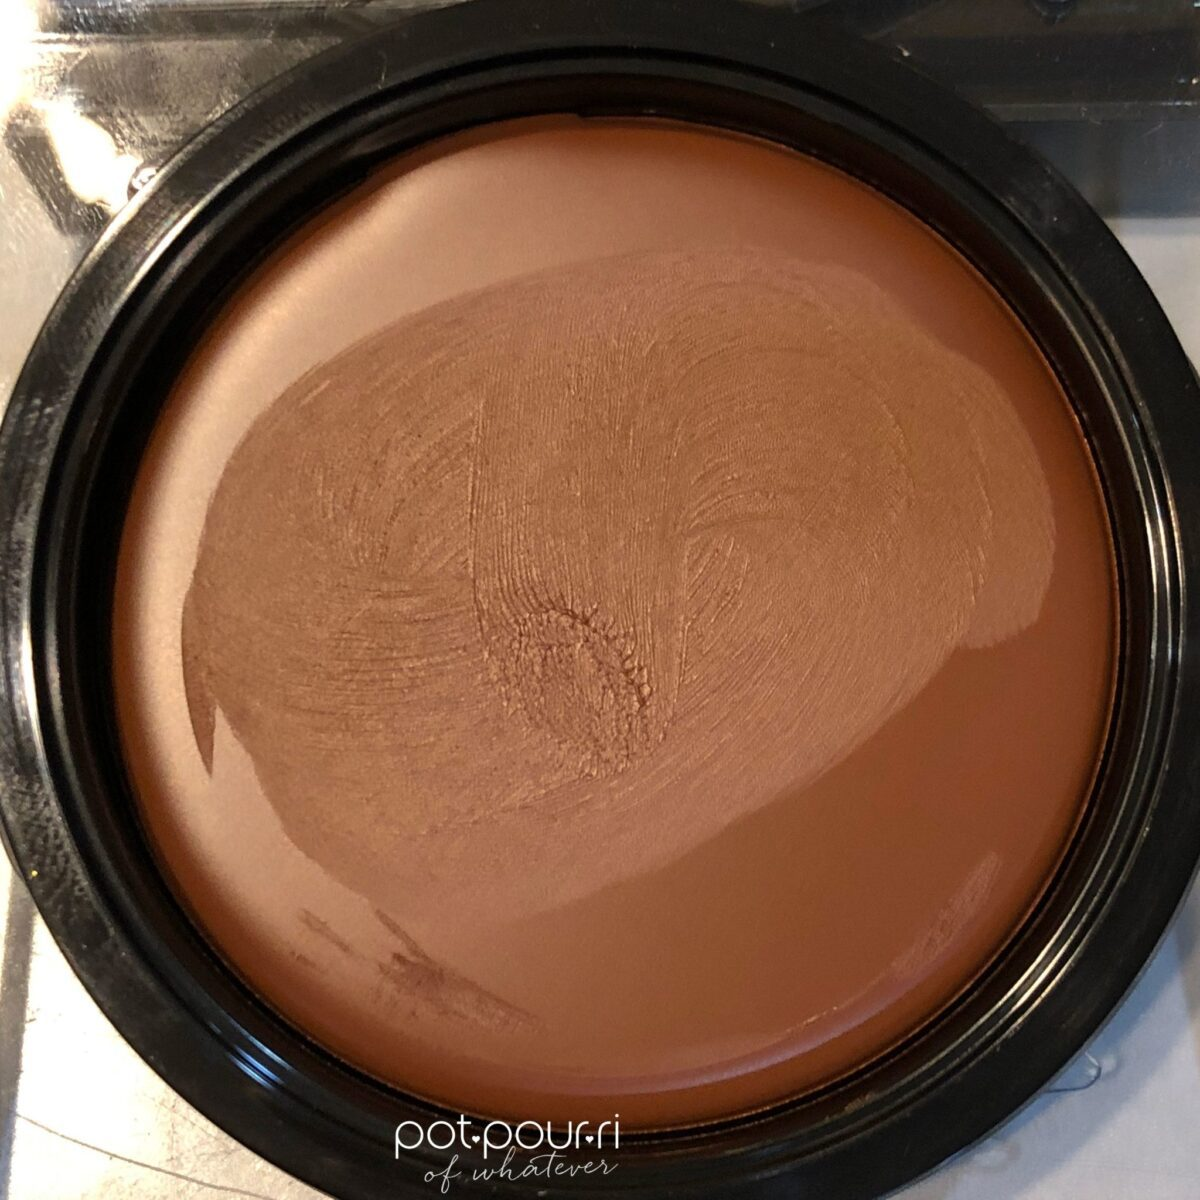 HUDA BEAUTY TANTOOUR IN THE MEDIUM SHADE